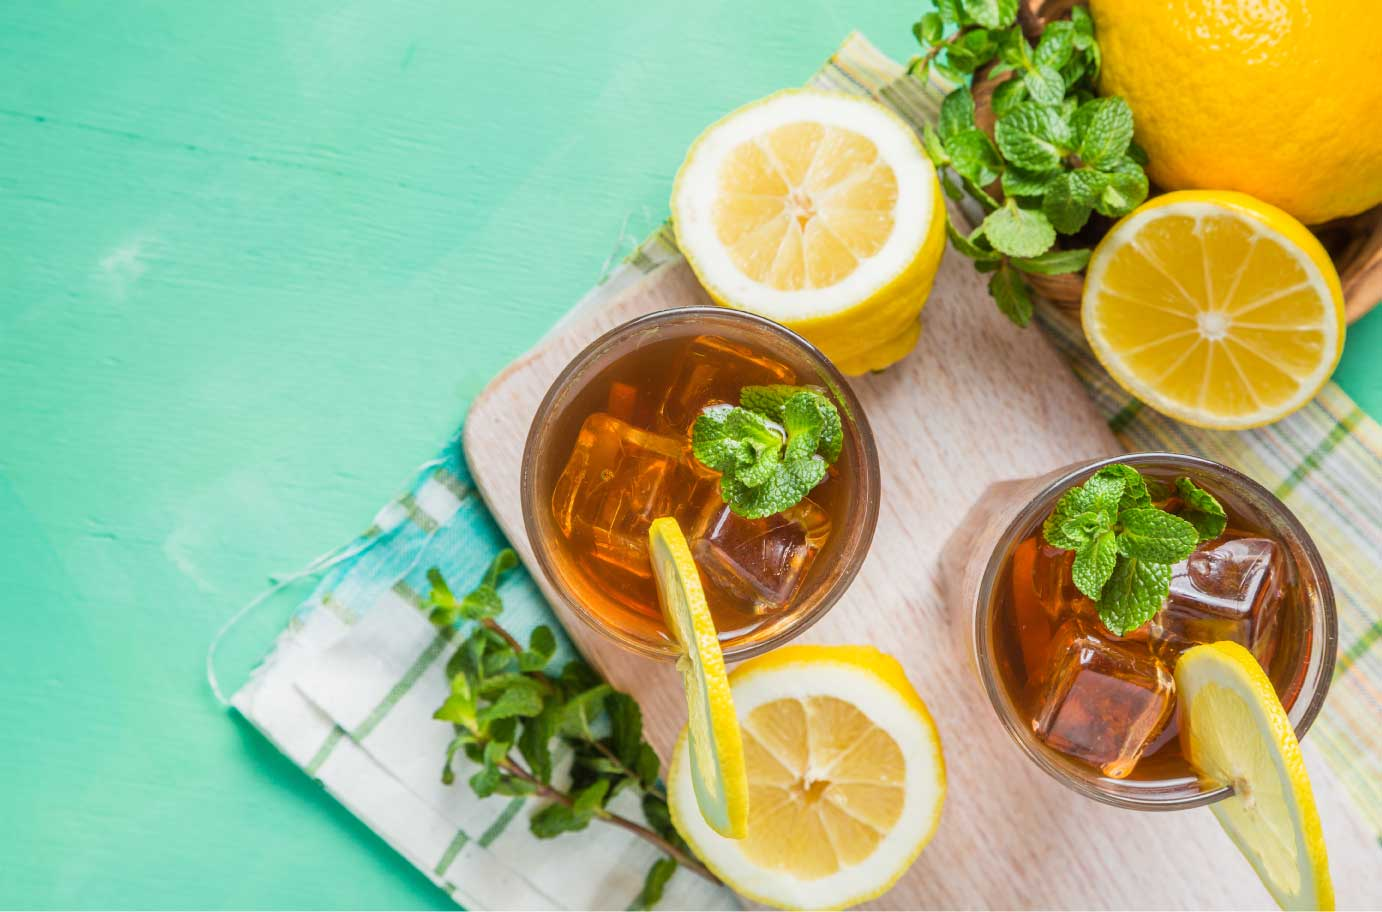 Iced tea is made for summer!